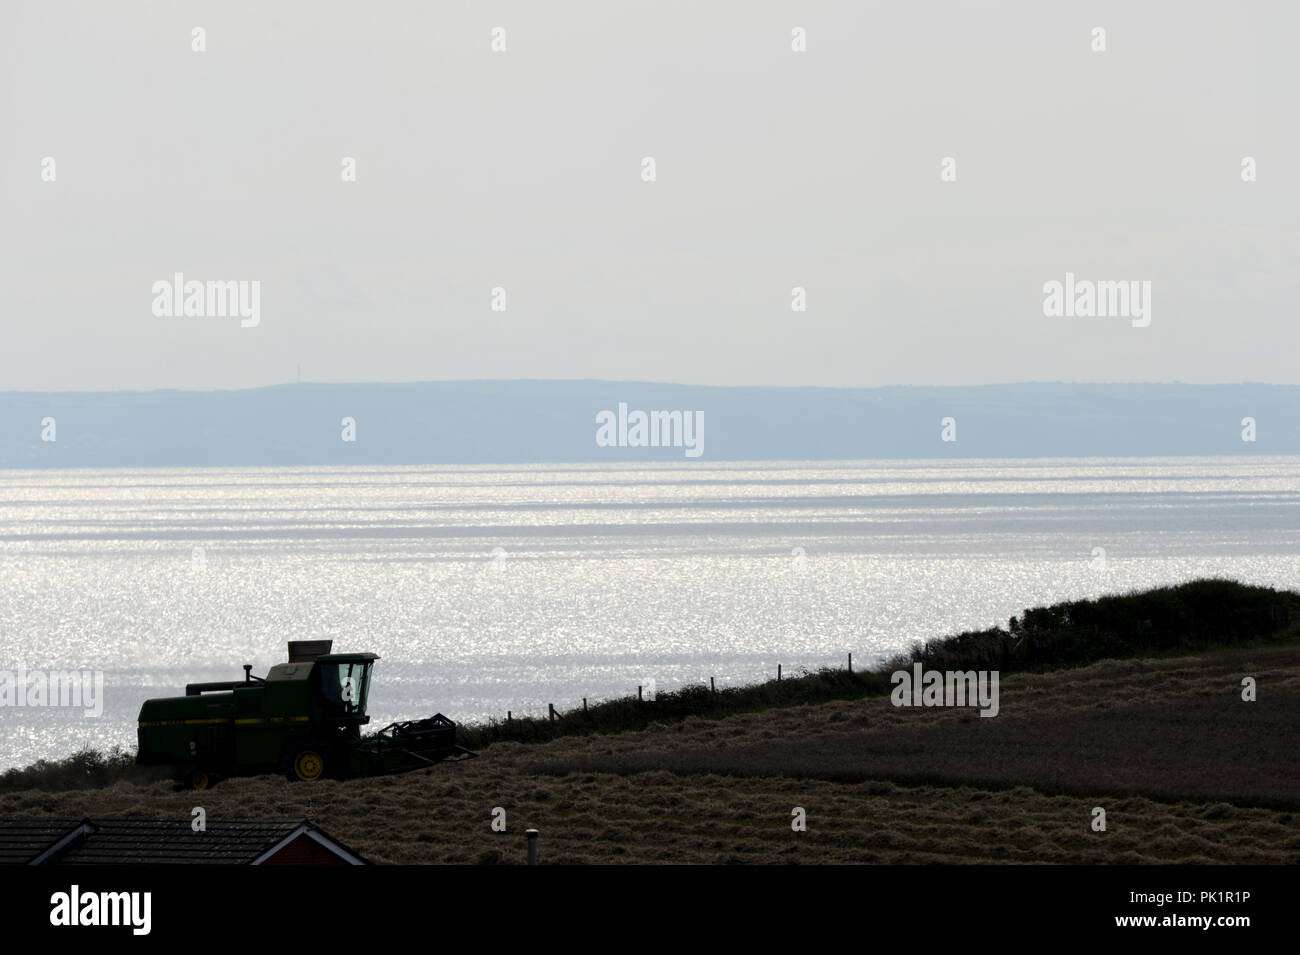 combine harvester in field of wheat with a sparkling sea in the background - Stock Image